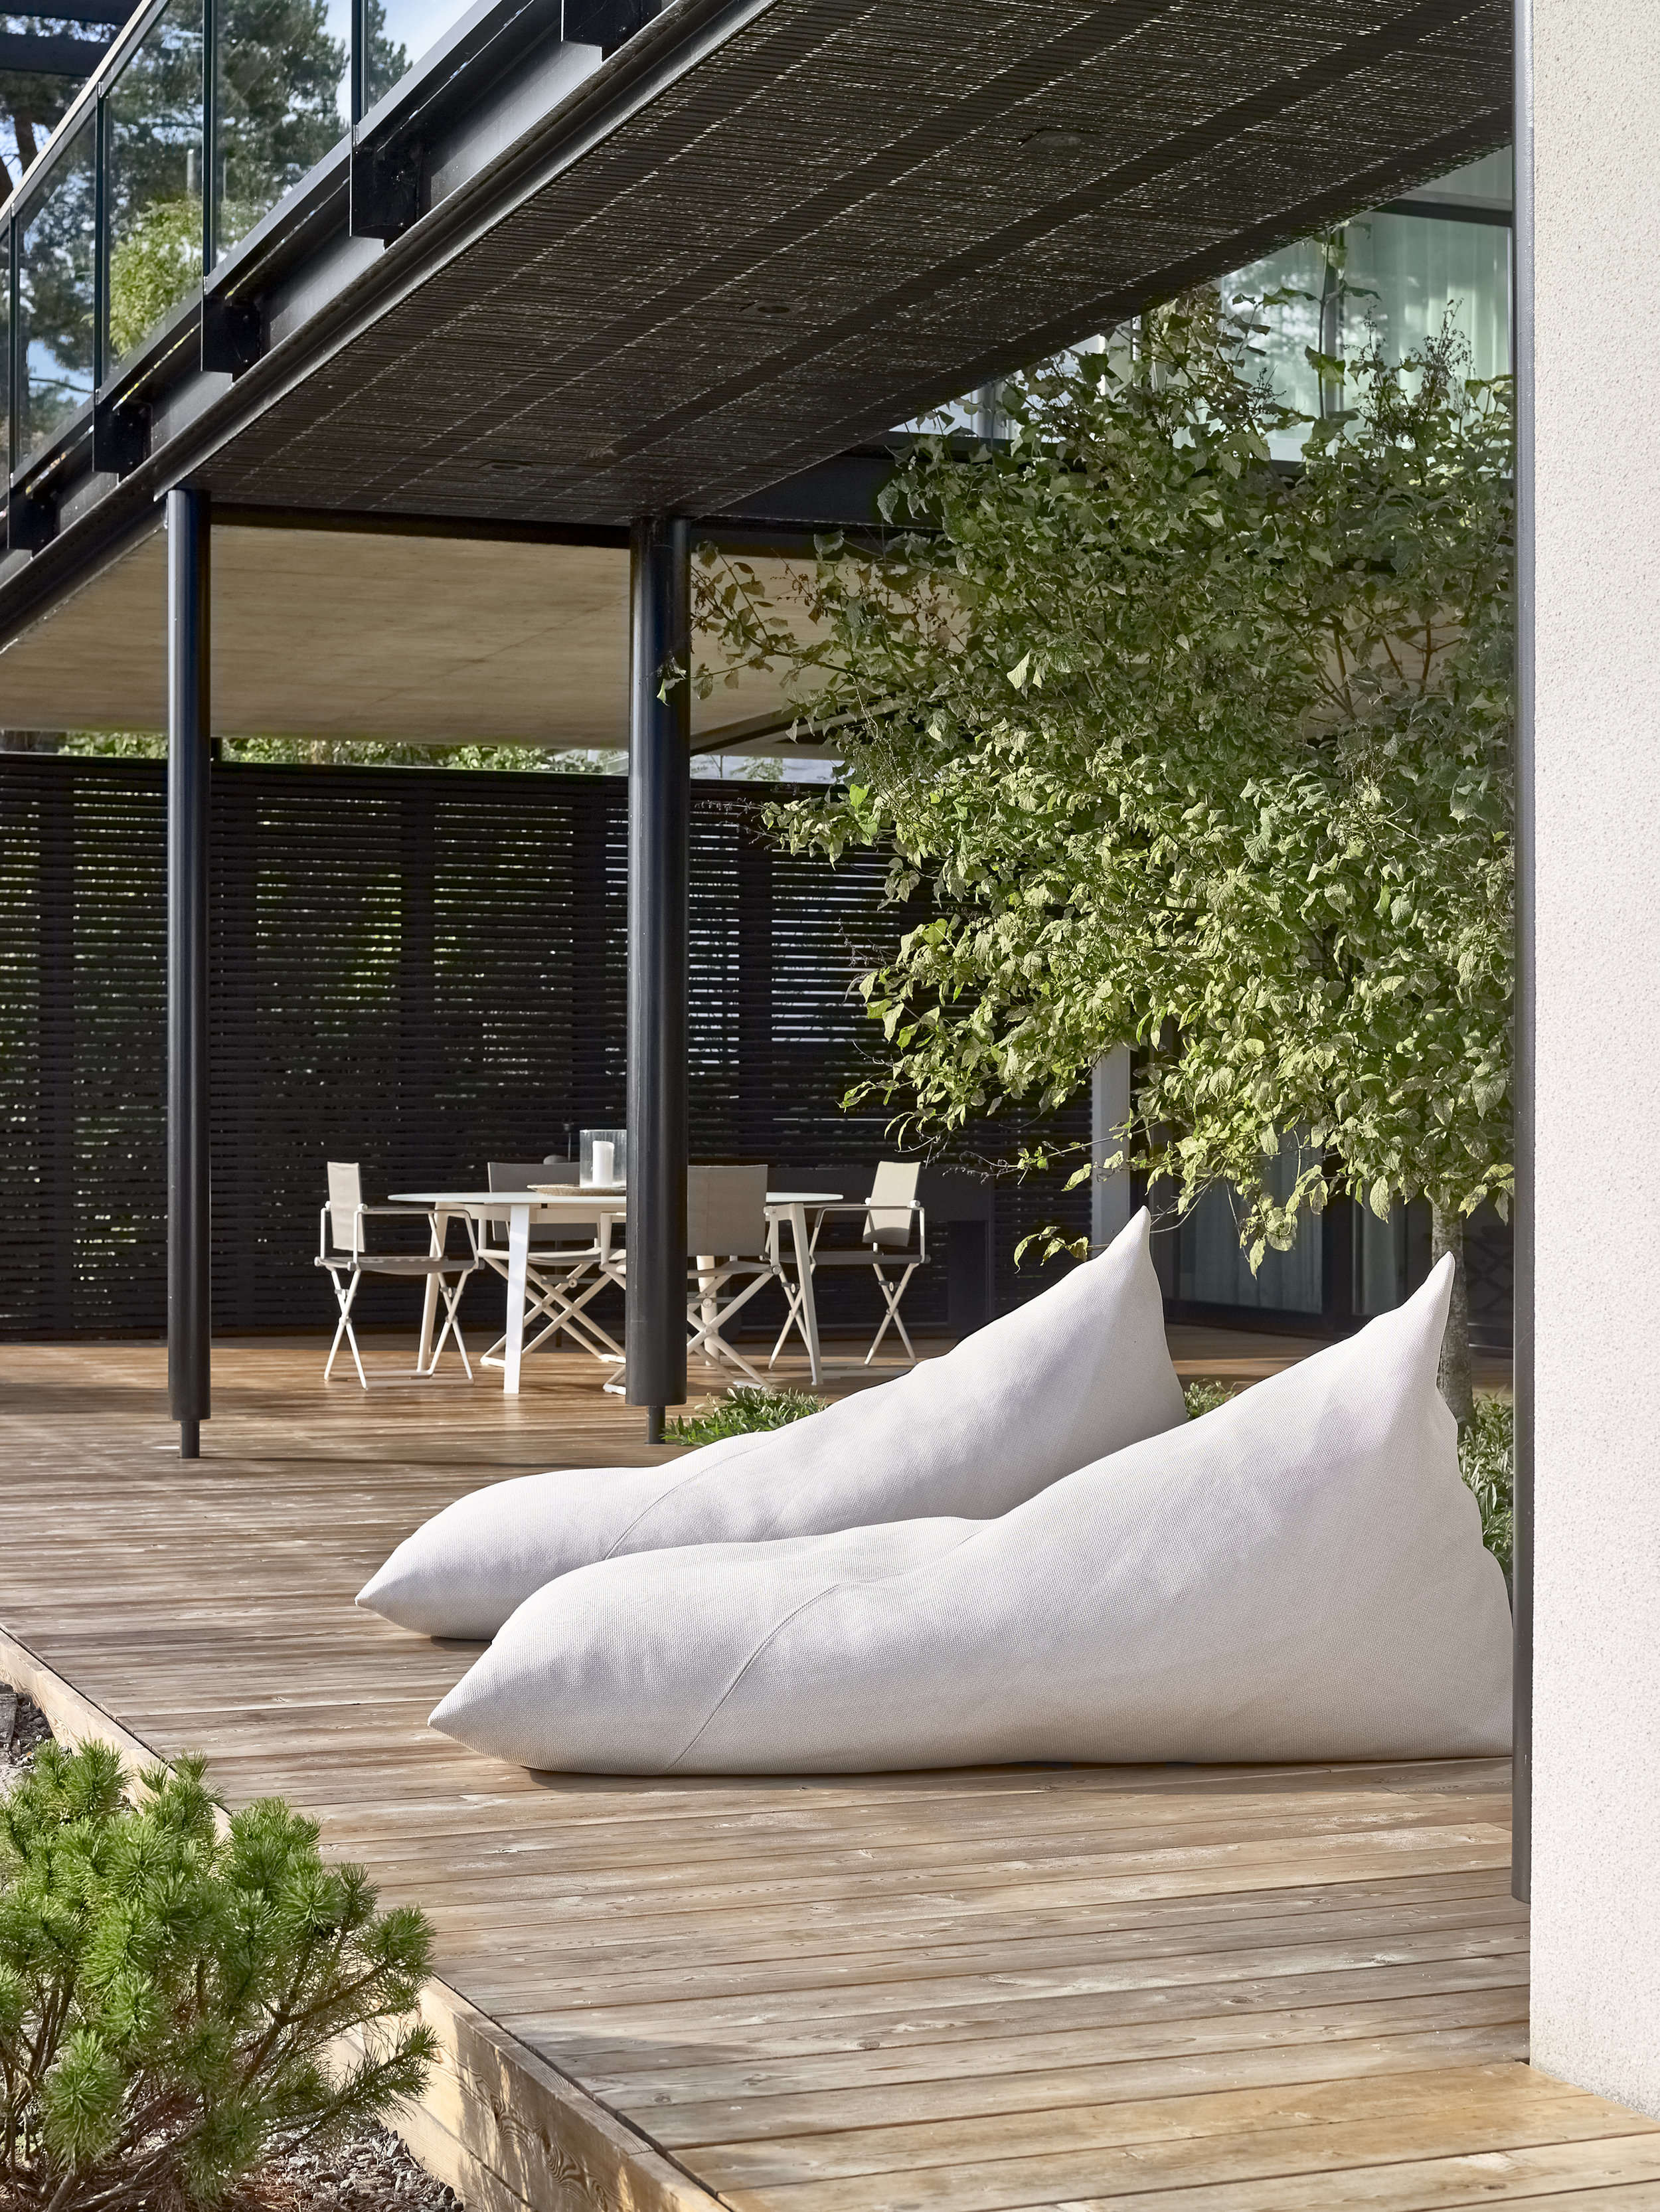 Outdoor Roo upholstered Saimaa Natural White fabric